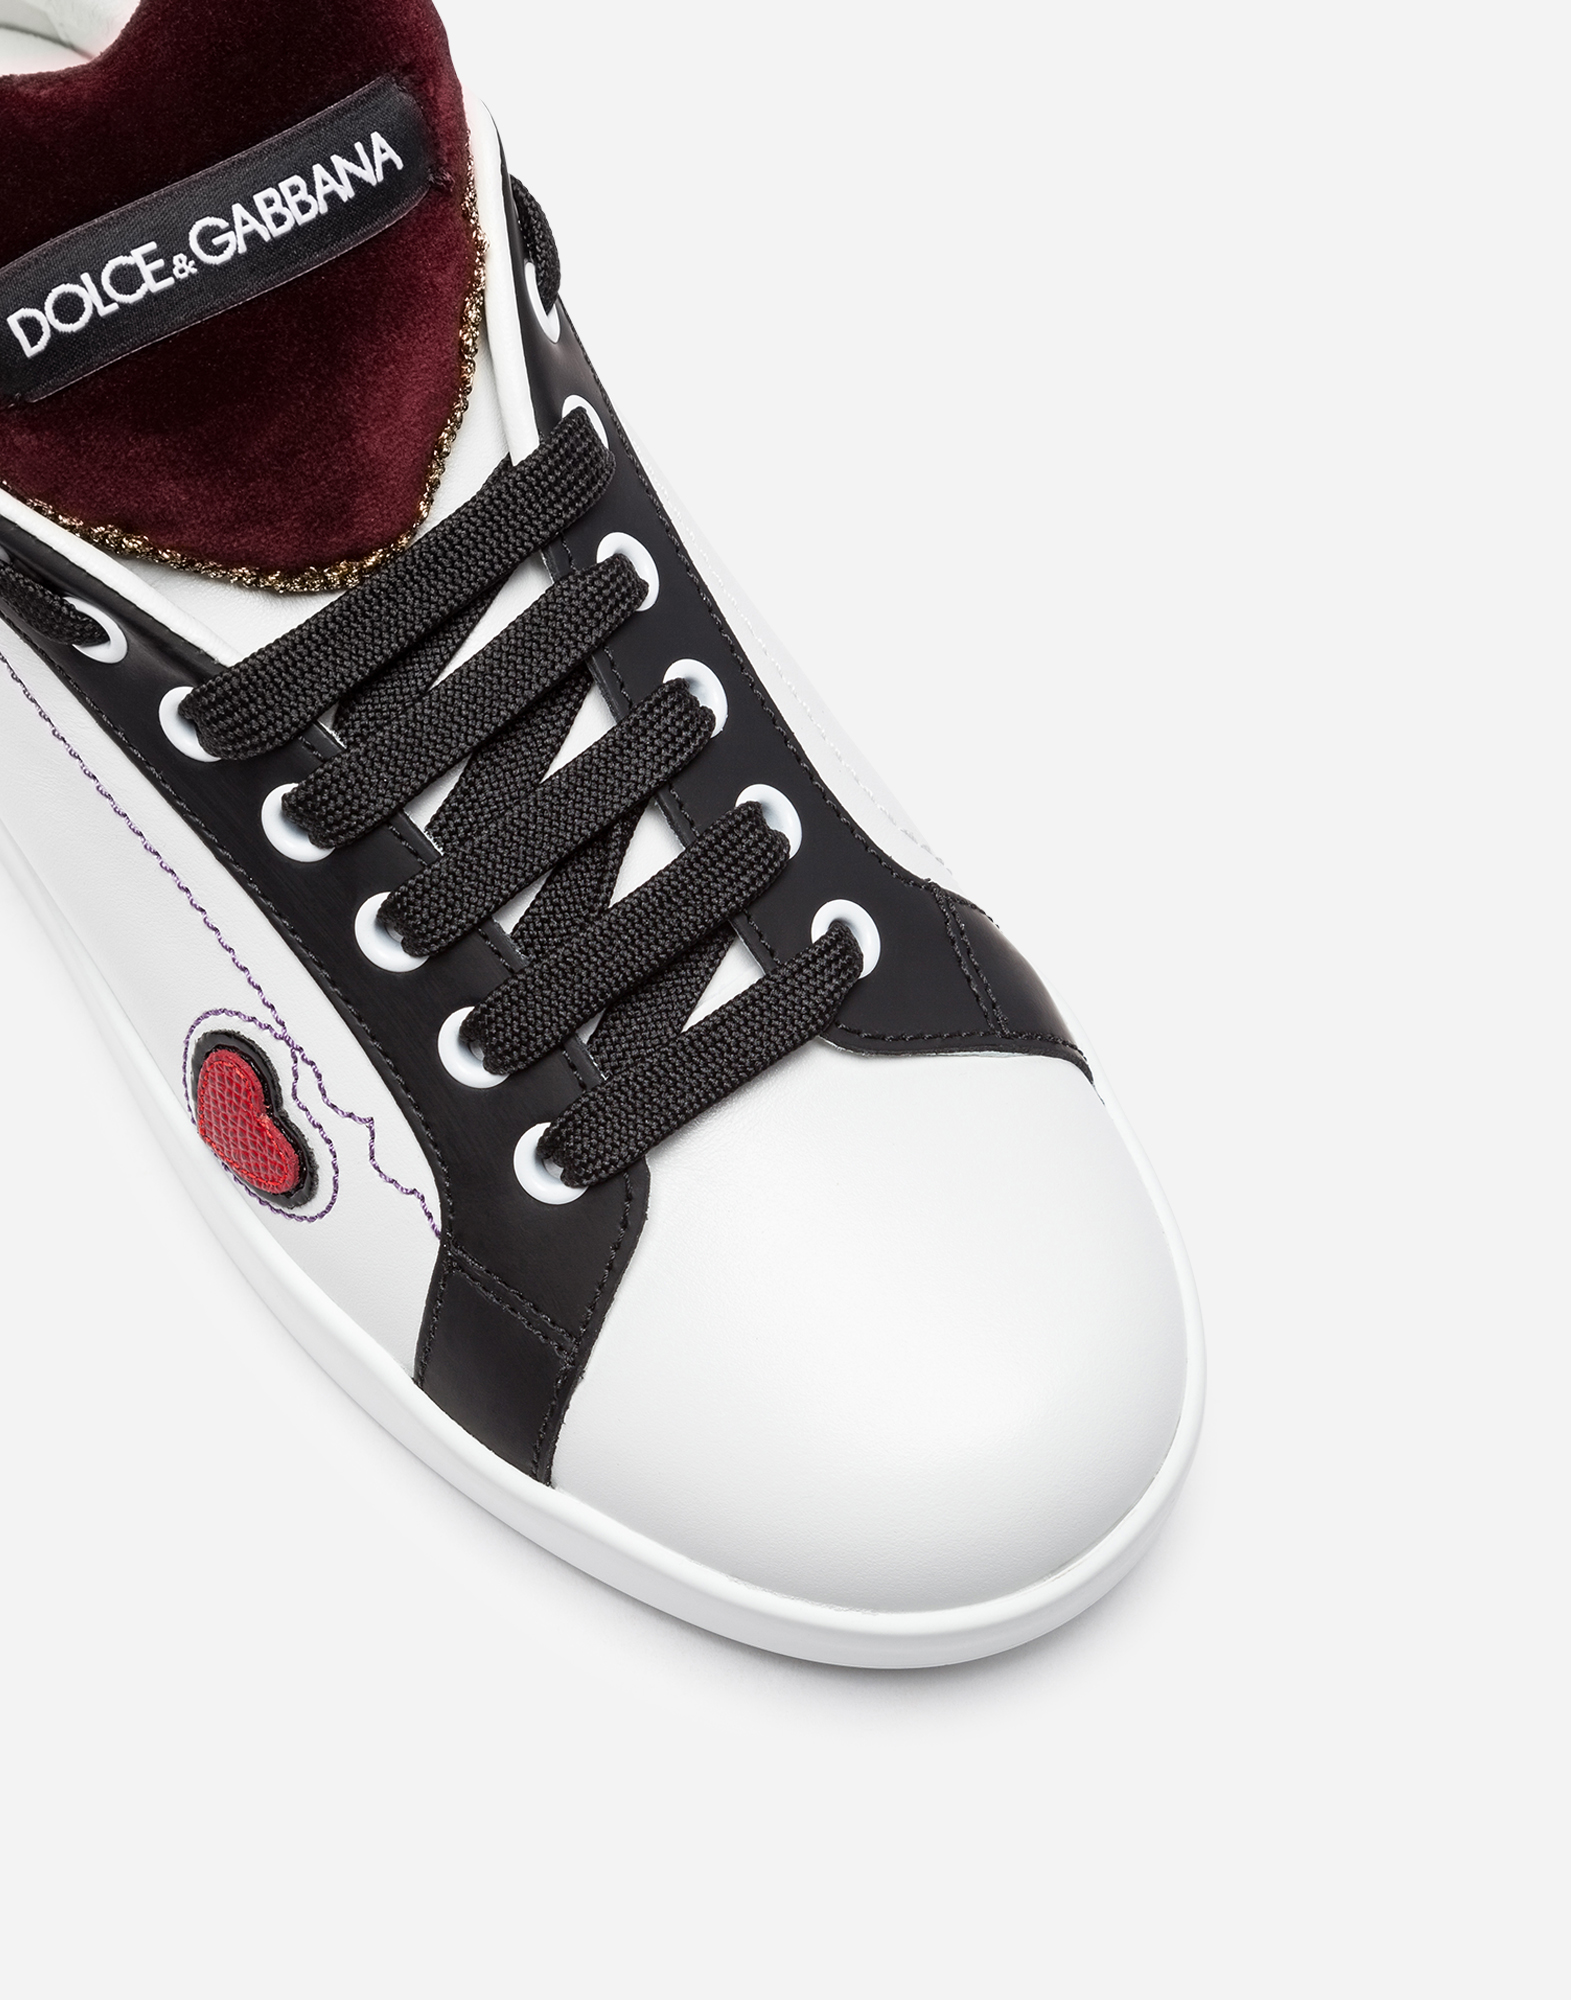 LEATHER SNEAKERS WITH PATCHES